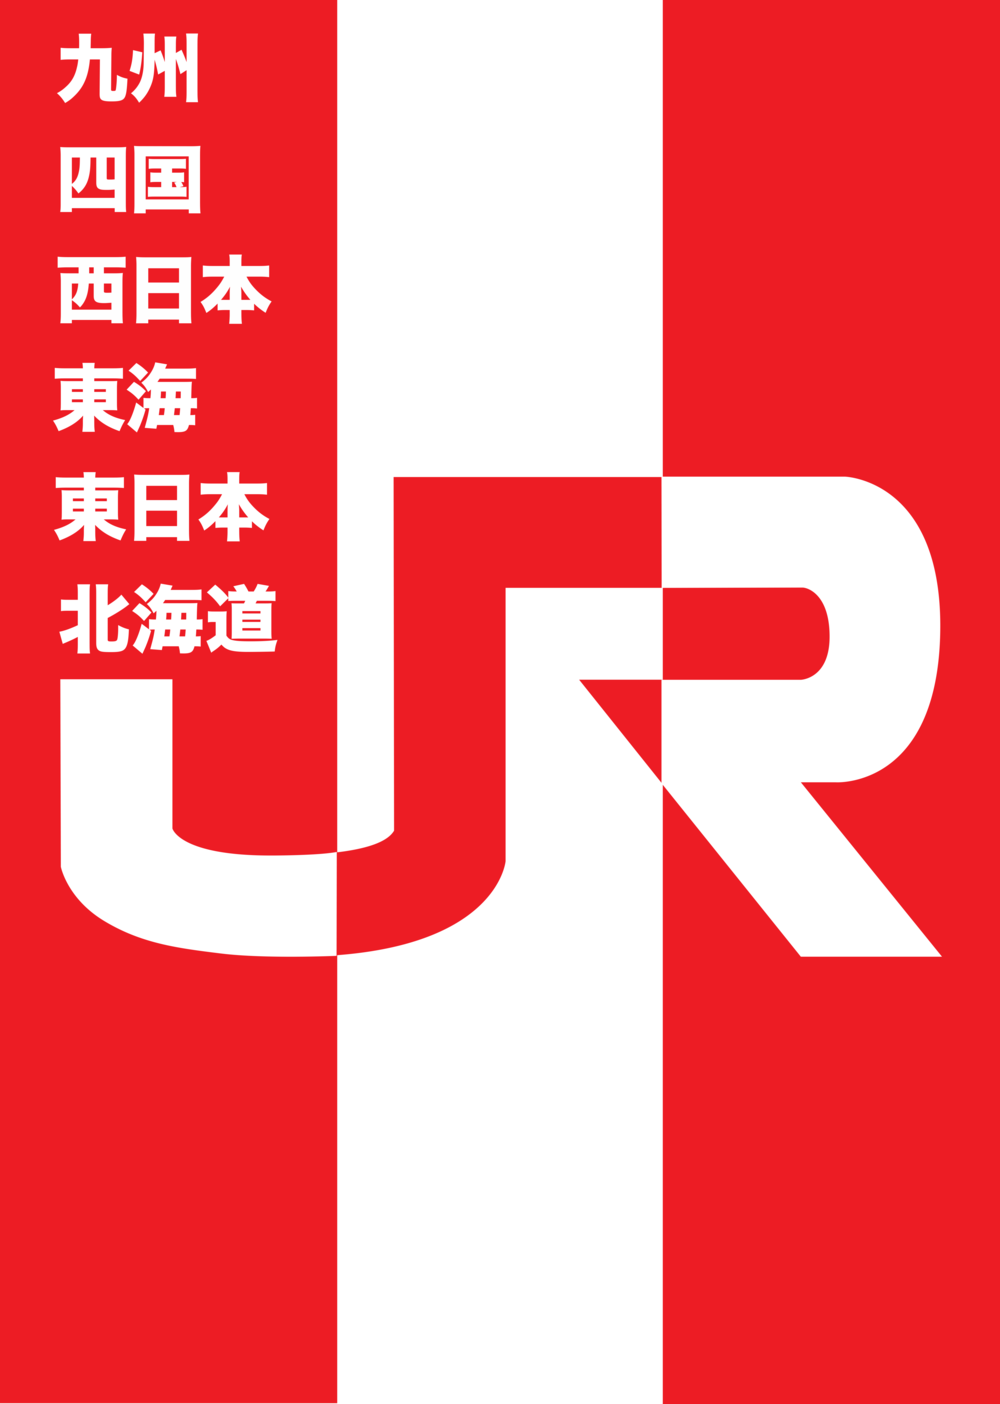 JR Rail poster two tone.